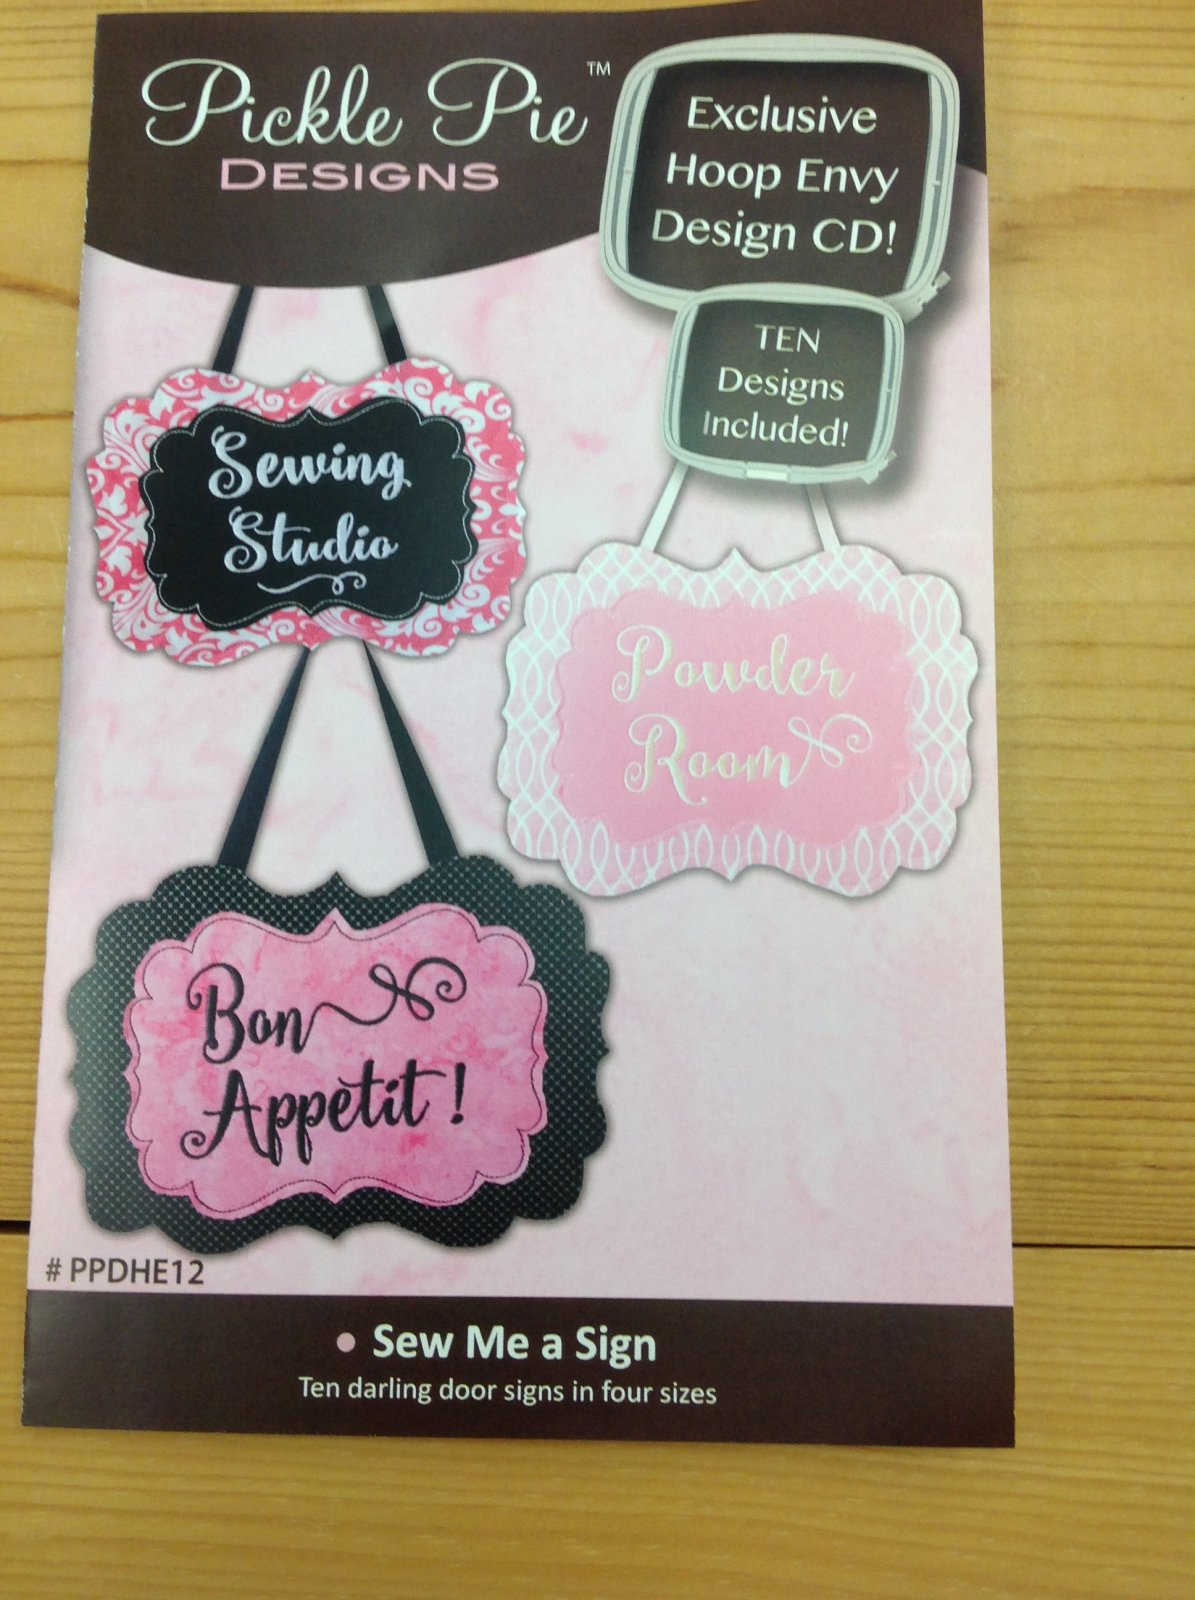 Pickle Pie Designs Sew me a Sign